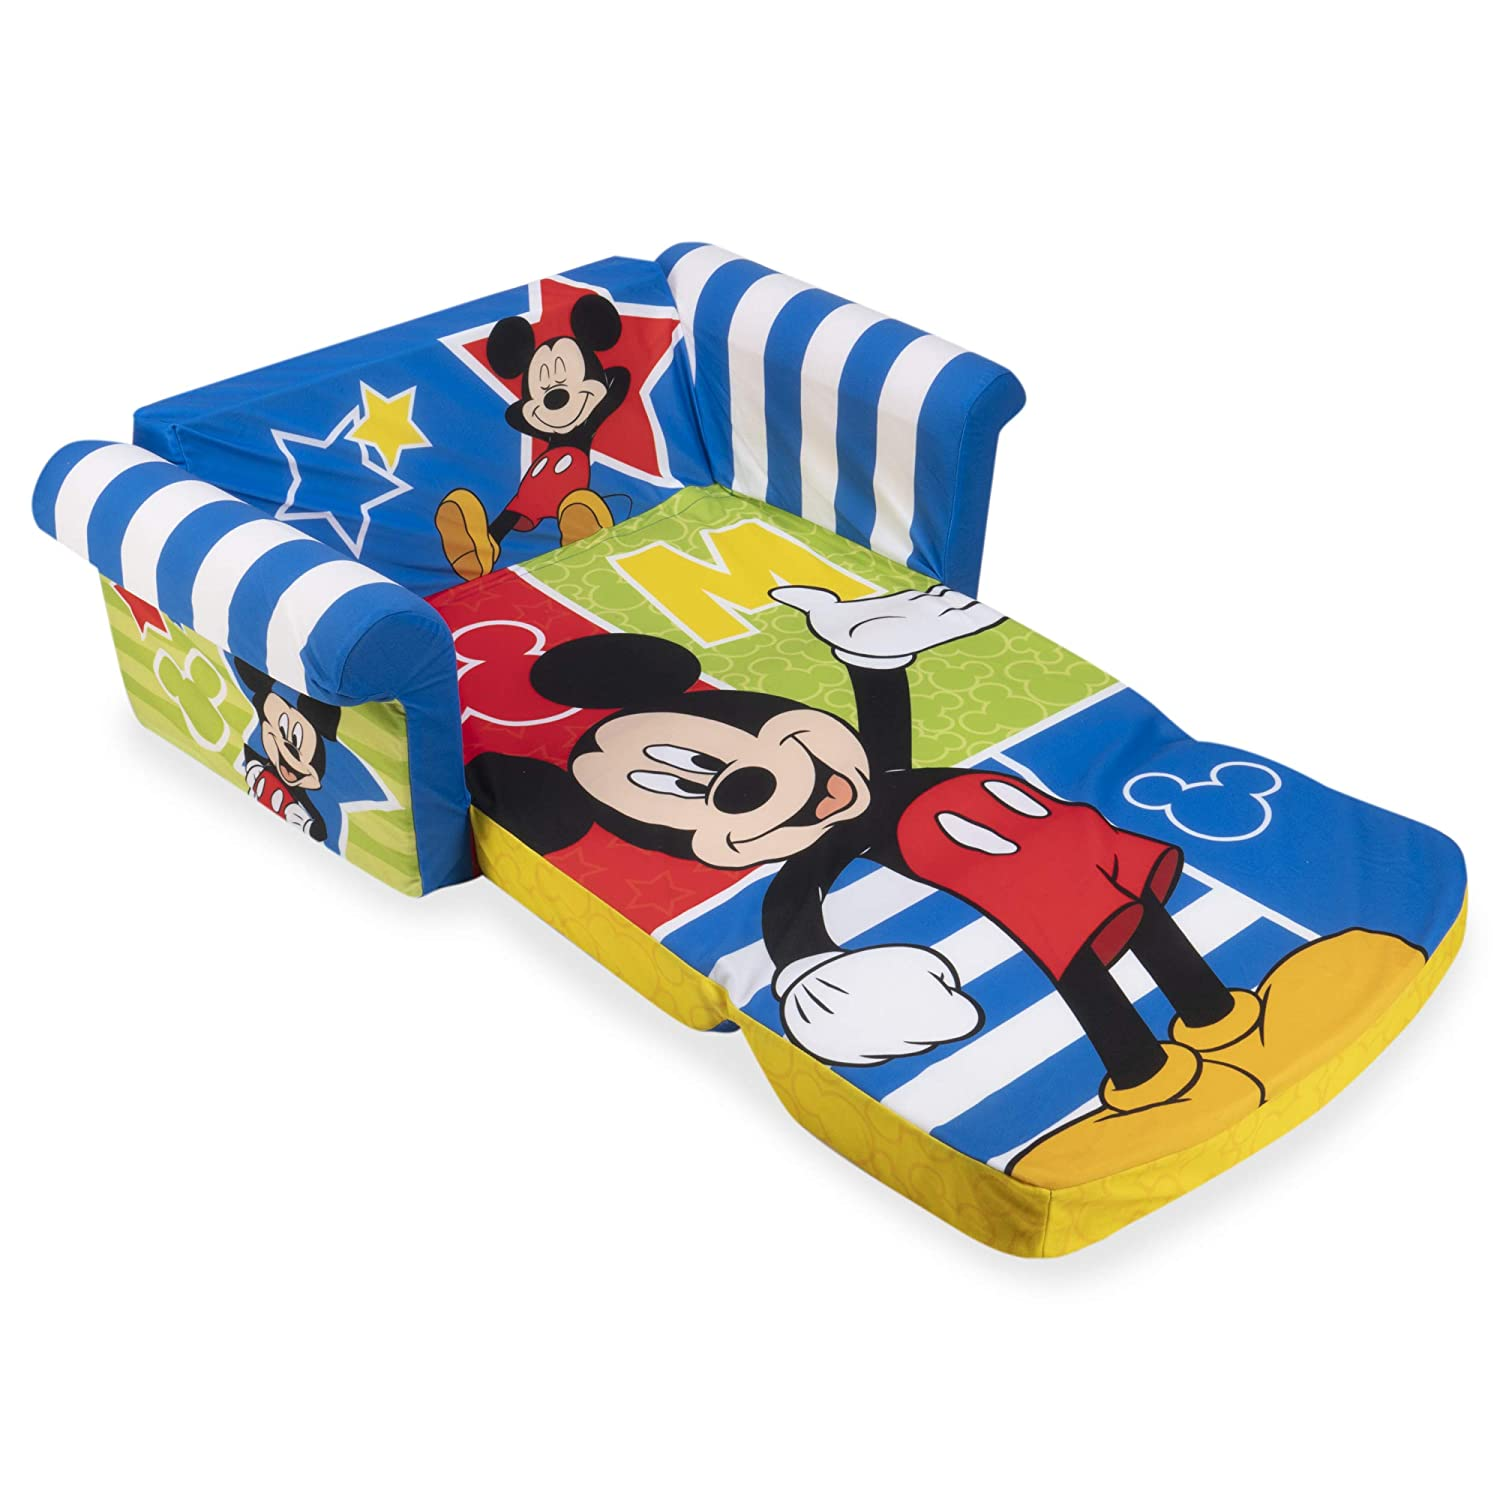 by Spin Master Disney/'s Mickey Mouse Childrens 2-in-1 Flip Open Foam Sofa Marshmallow Furniture